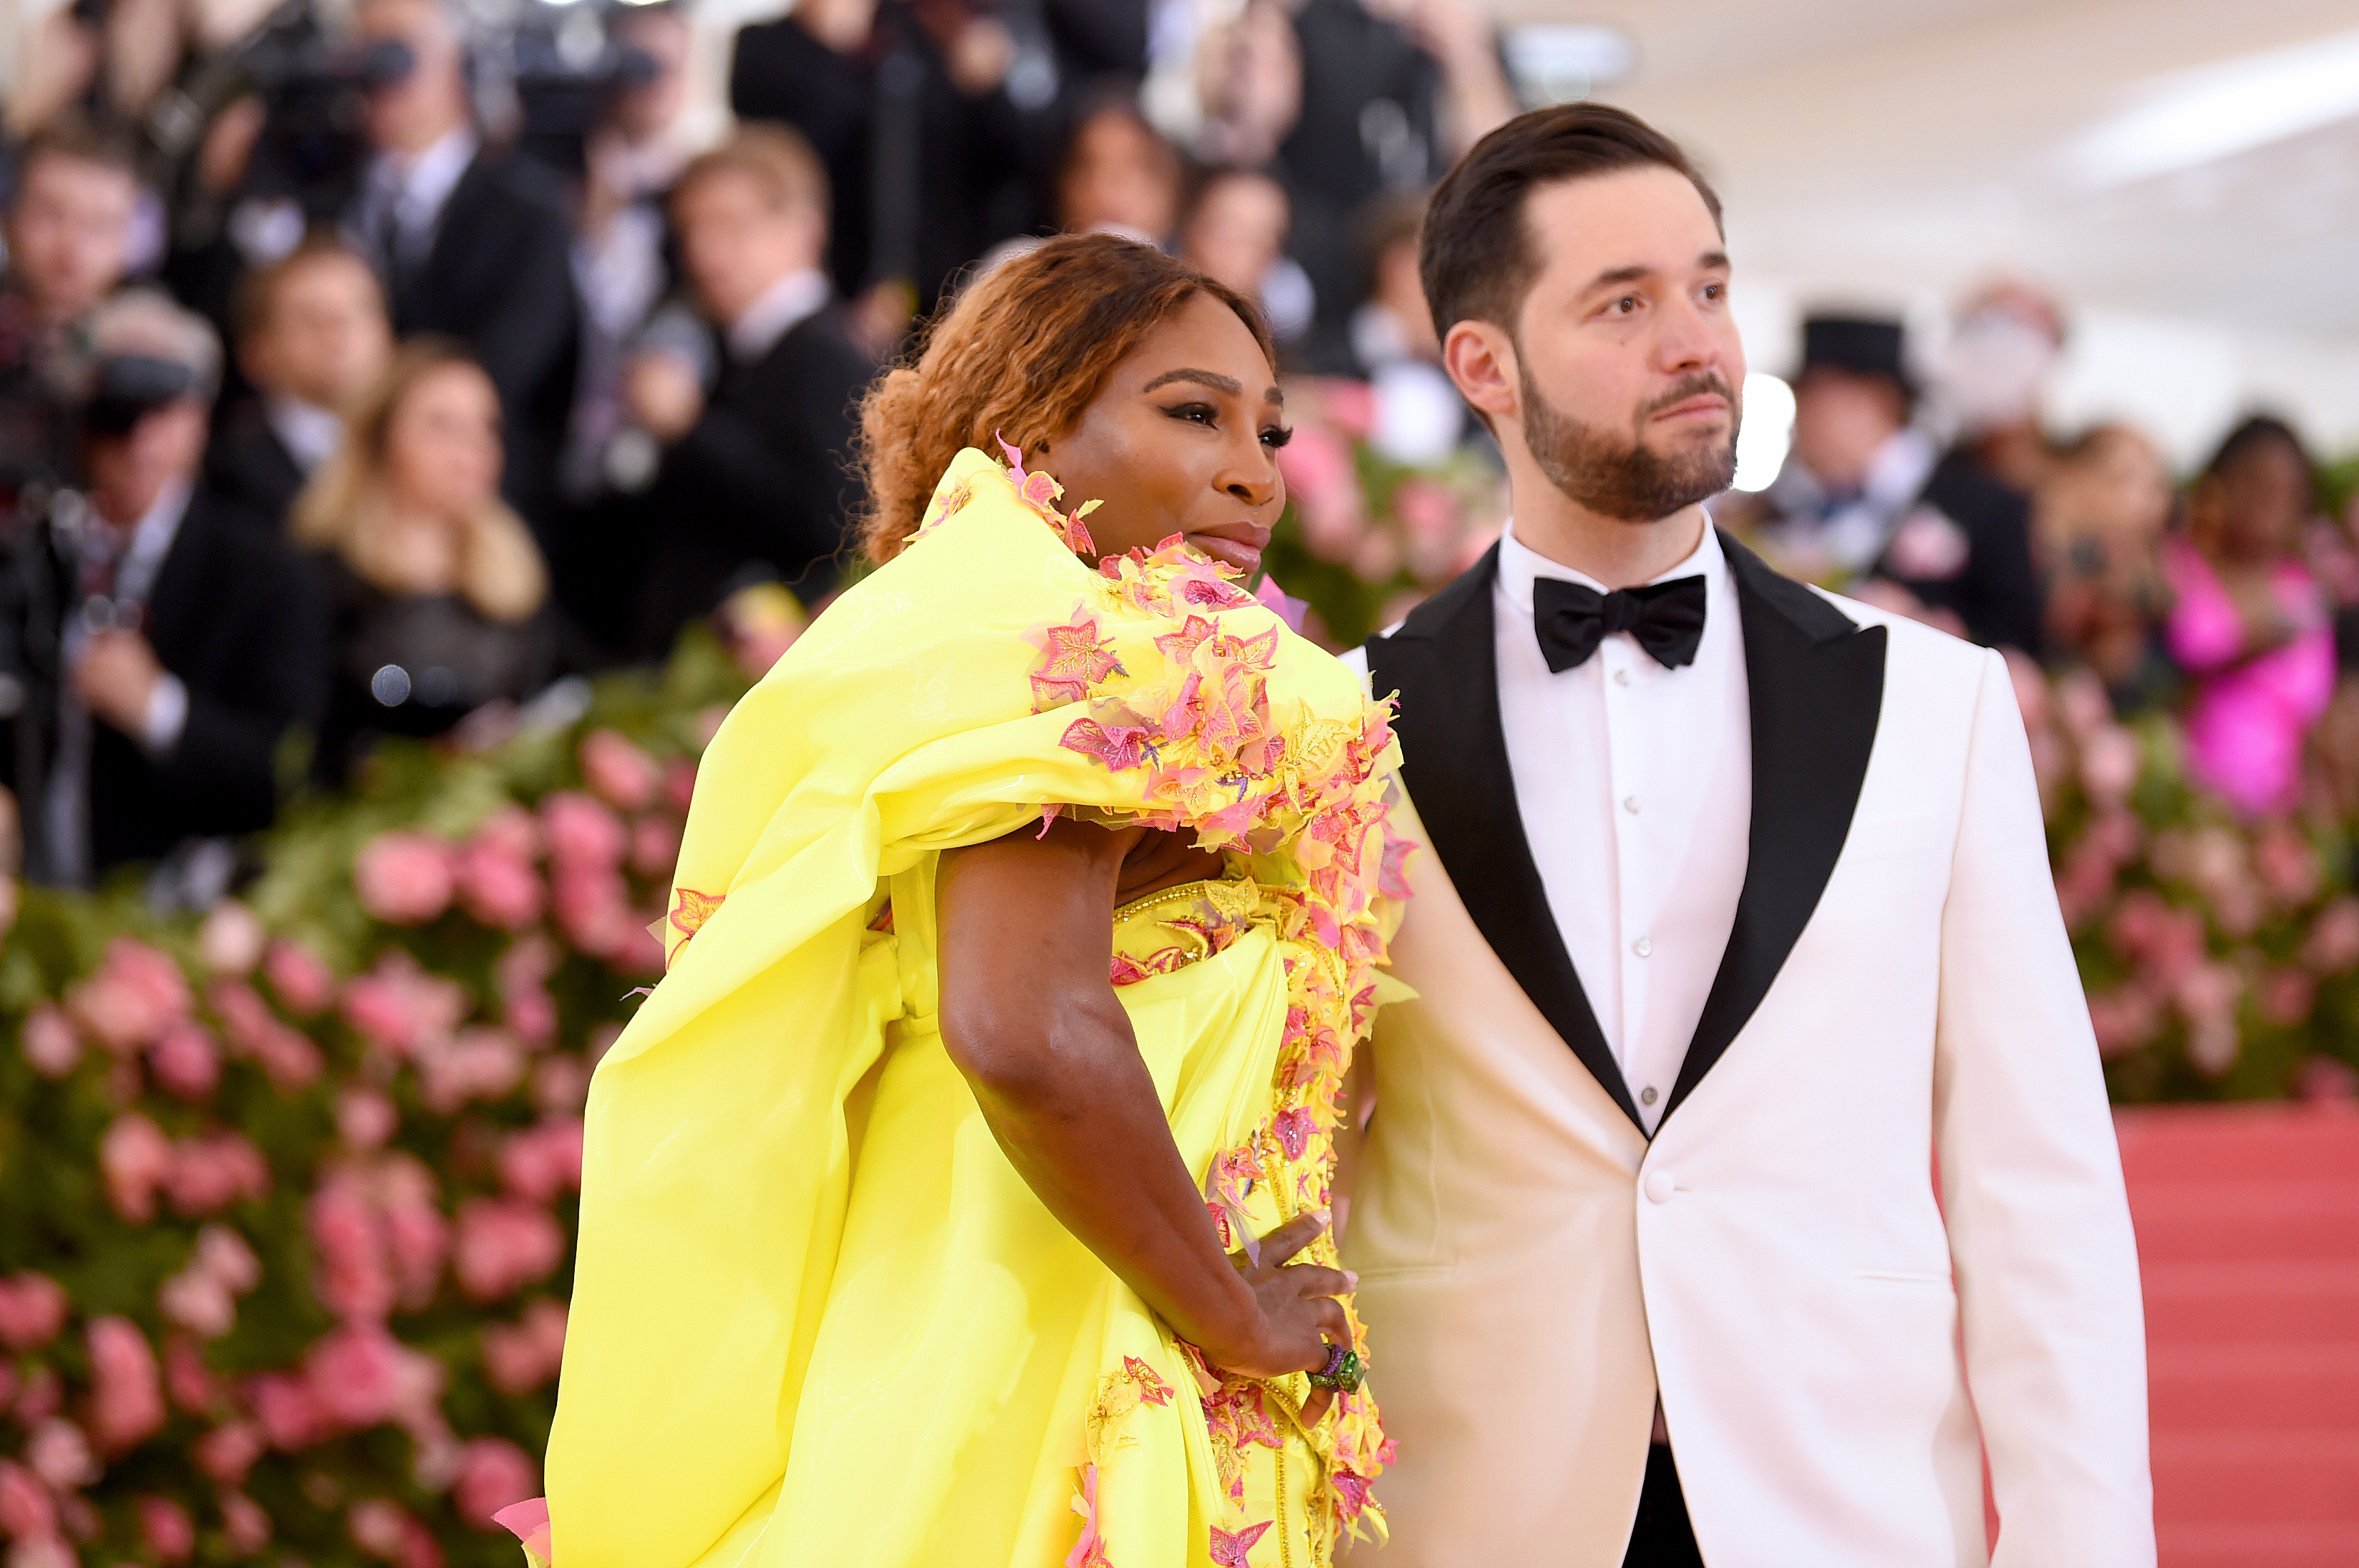 Serena Williams and Alexis Ohanian attend The 2019 Met Gala Celebrating Camp: Notes on Fashion at Metropolitan Museum of Art on May 06, 2019 | Photo: GettyImages